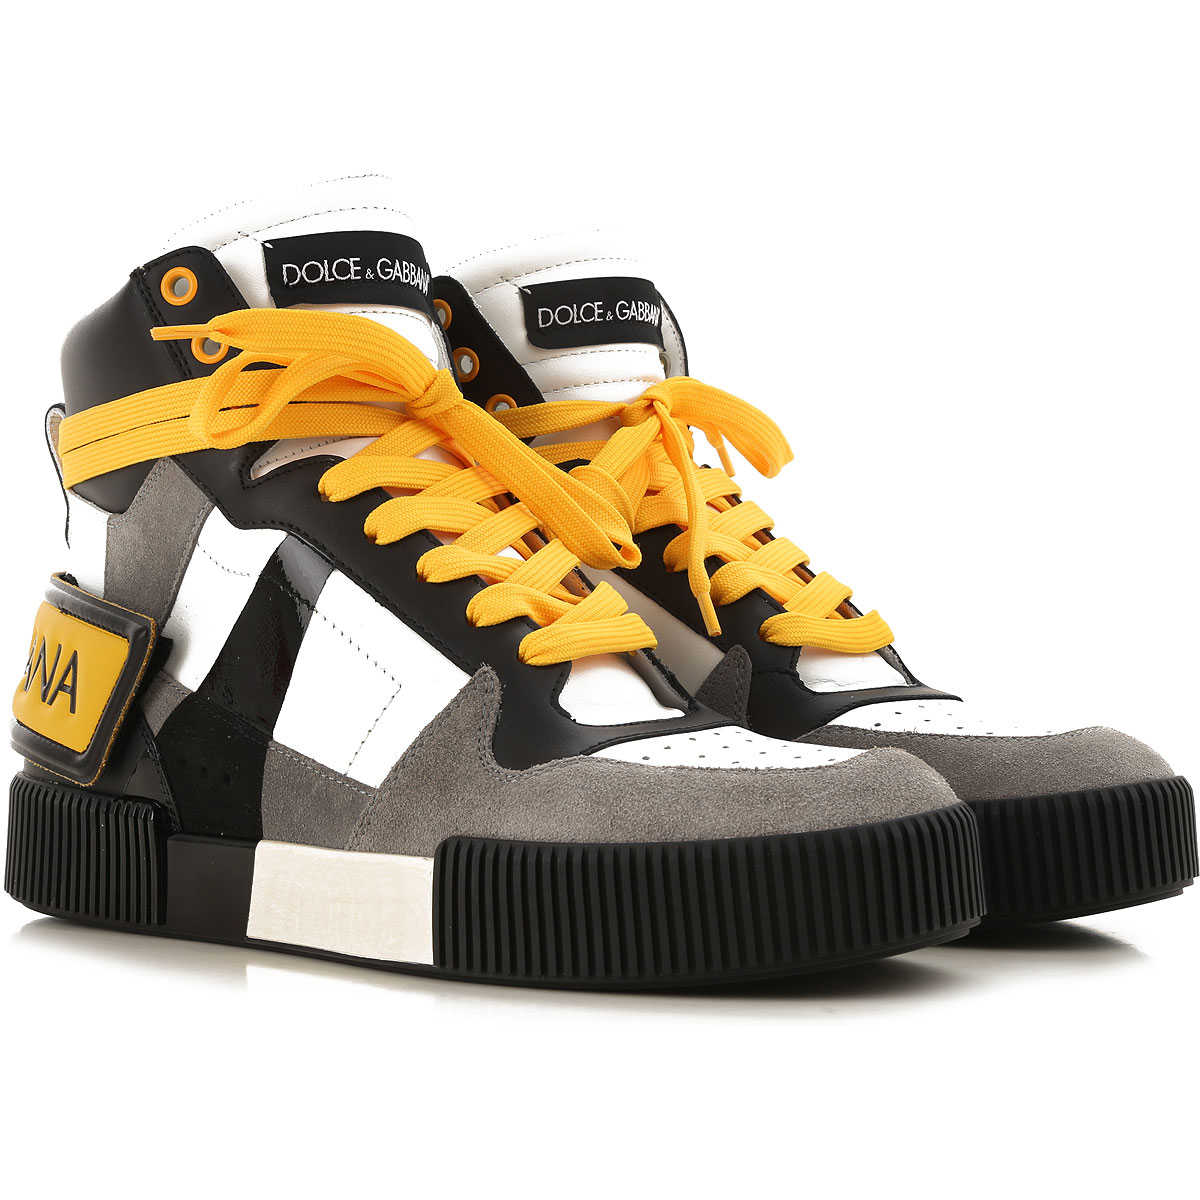 Dolce & Gabbana Sneakers for Men On Sale